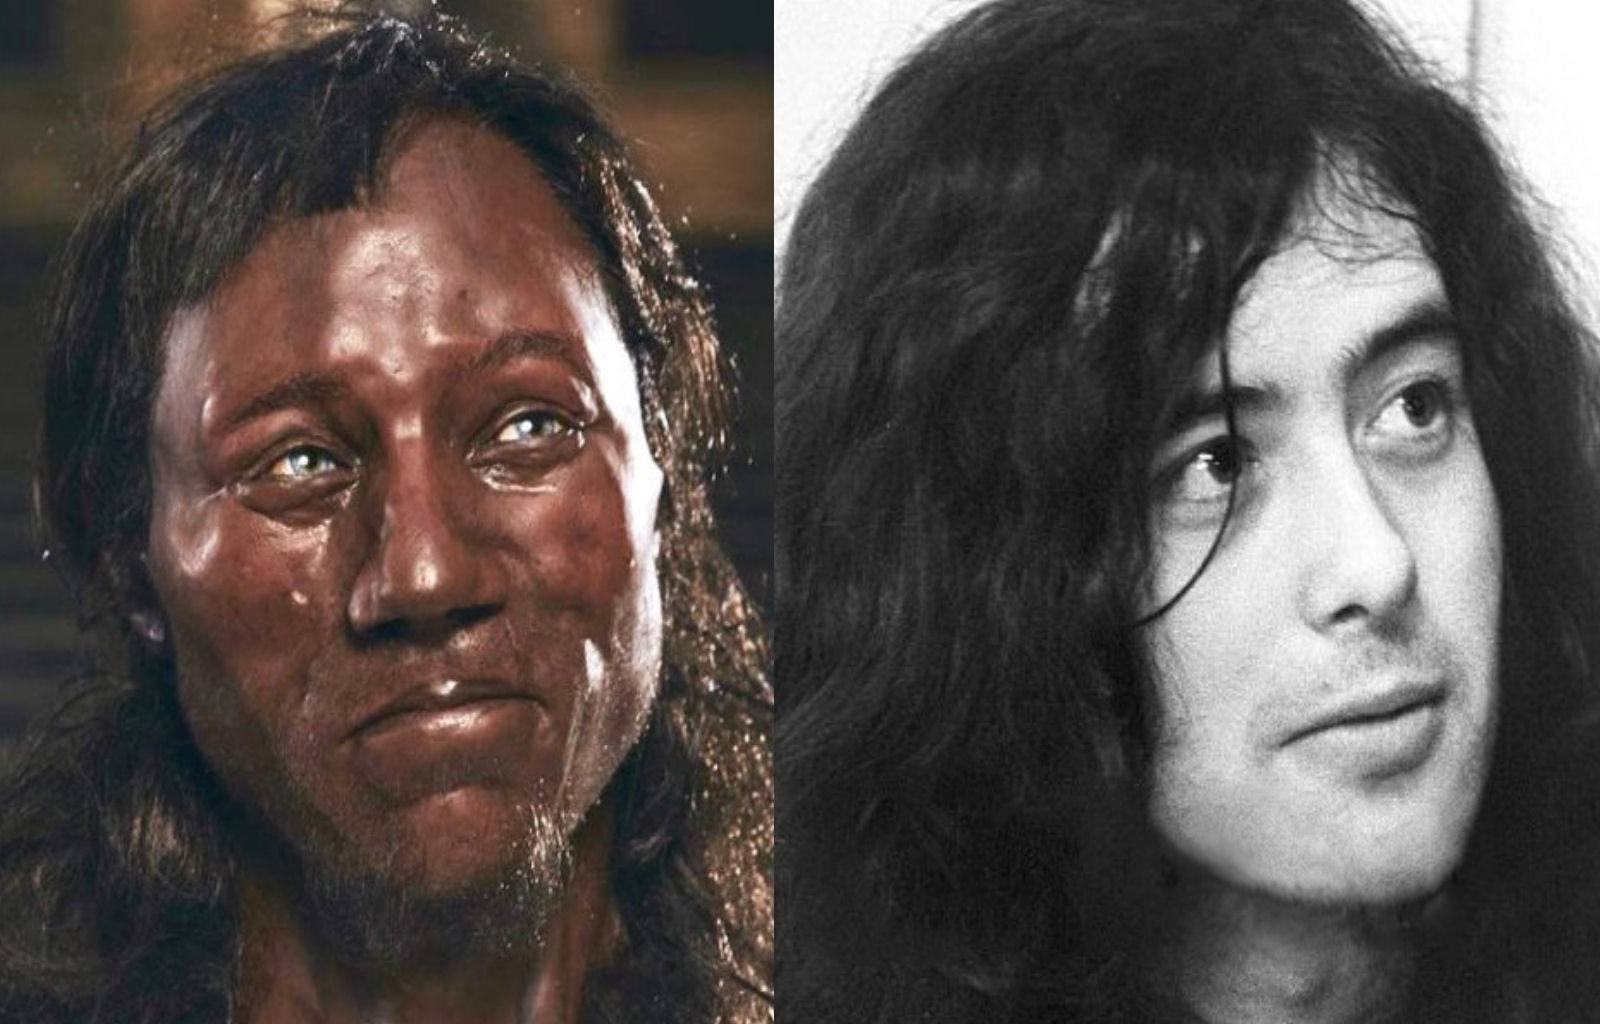 Scientific analysis reveals Cheddar Man is closely related to Jimmy Page.